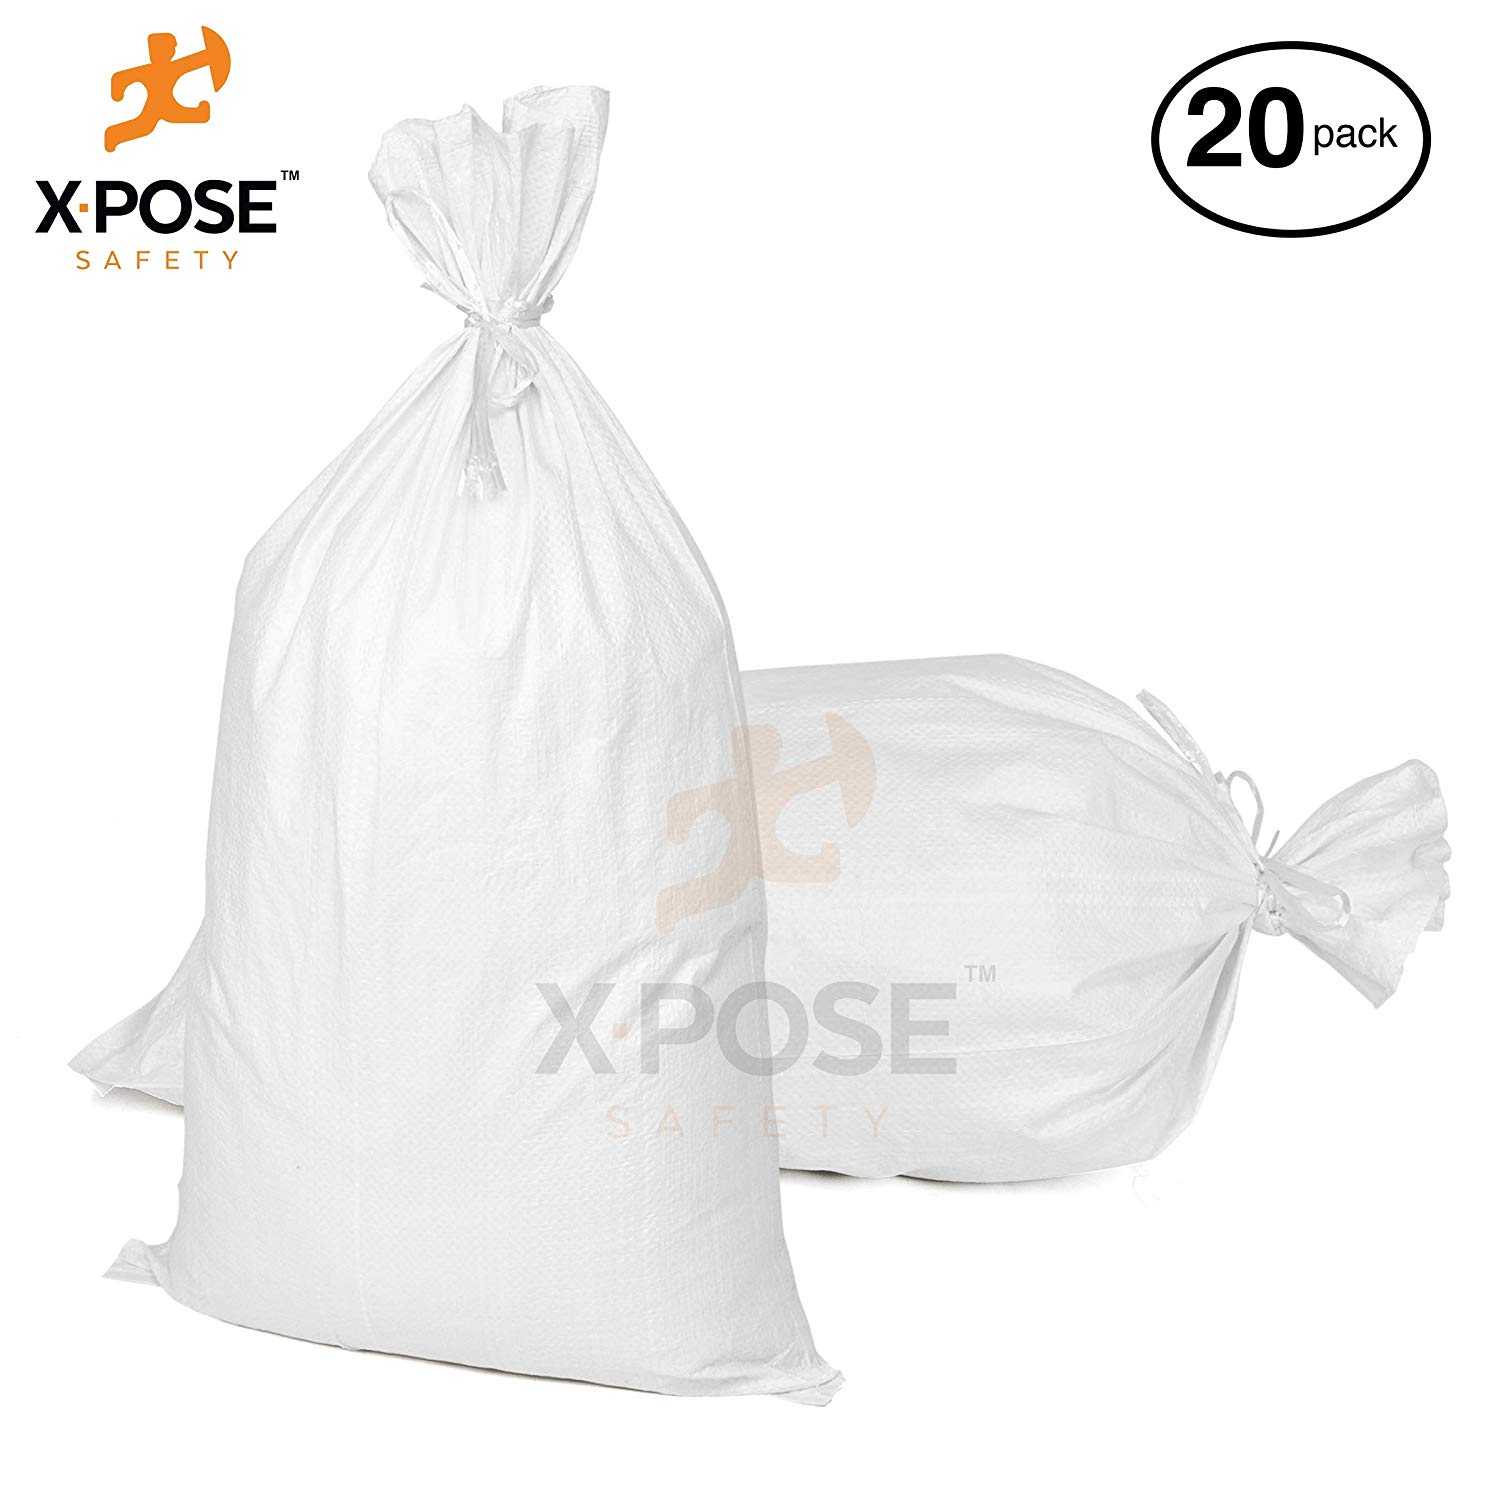 """15"""" x27"""" Empty Sand Bags, 20 Pack with Ties Heavy Duty Woven Polypropylene, UV Sun Protection, Dust, Water and Oil Resistant - Home and Industrial - Floods, Photography and More - by Xpose Safety WSB-1527-20"""